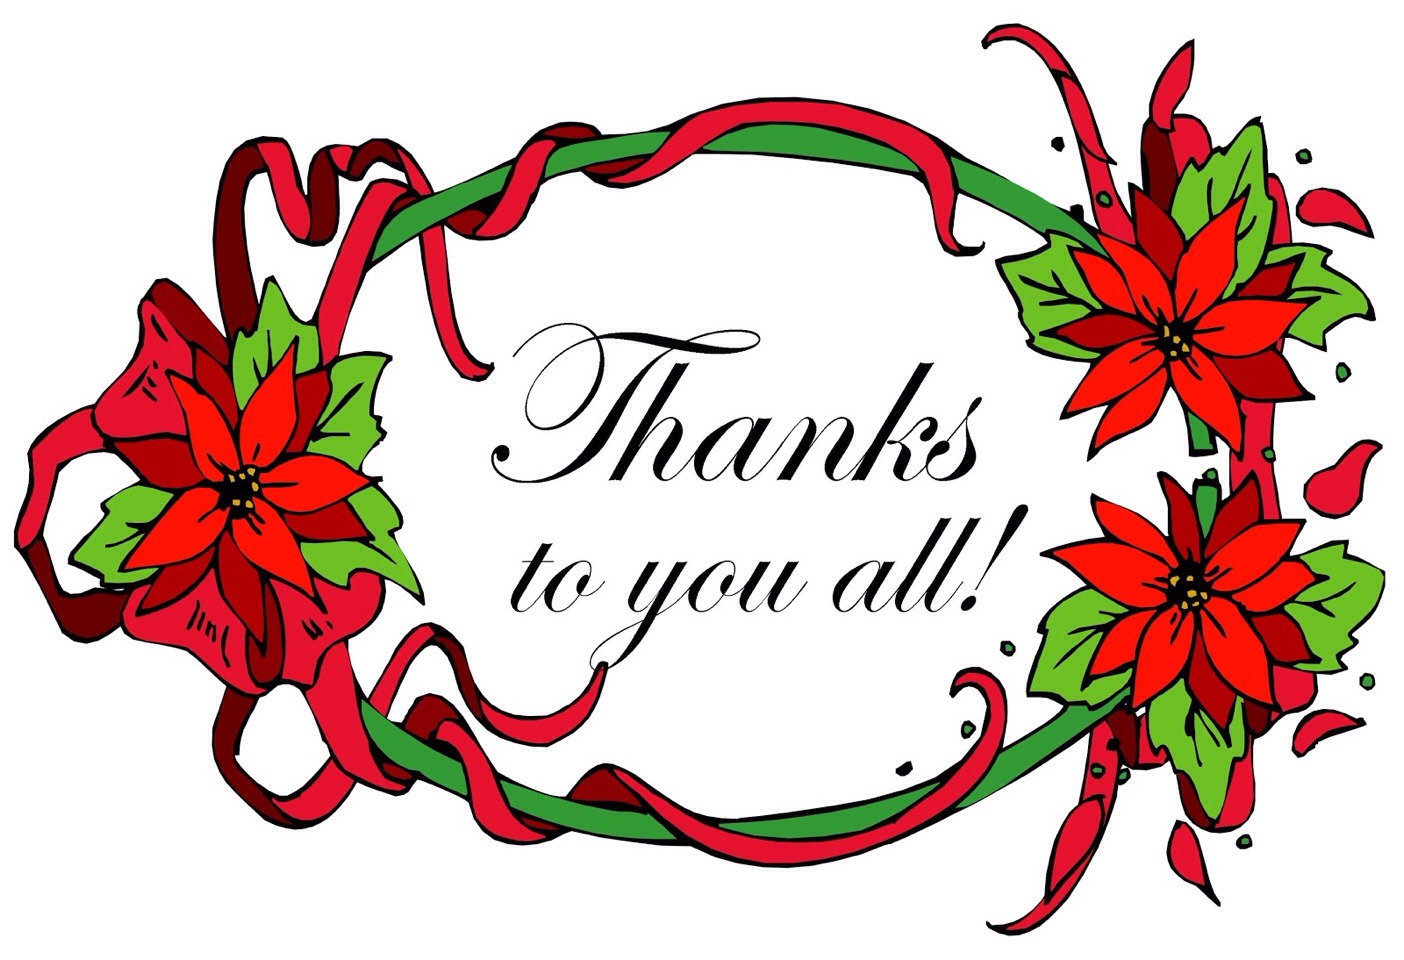 Thanks for reading.... Please like, share many more to come 💝💝